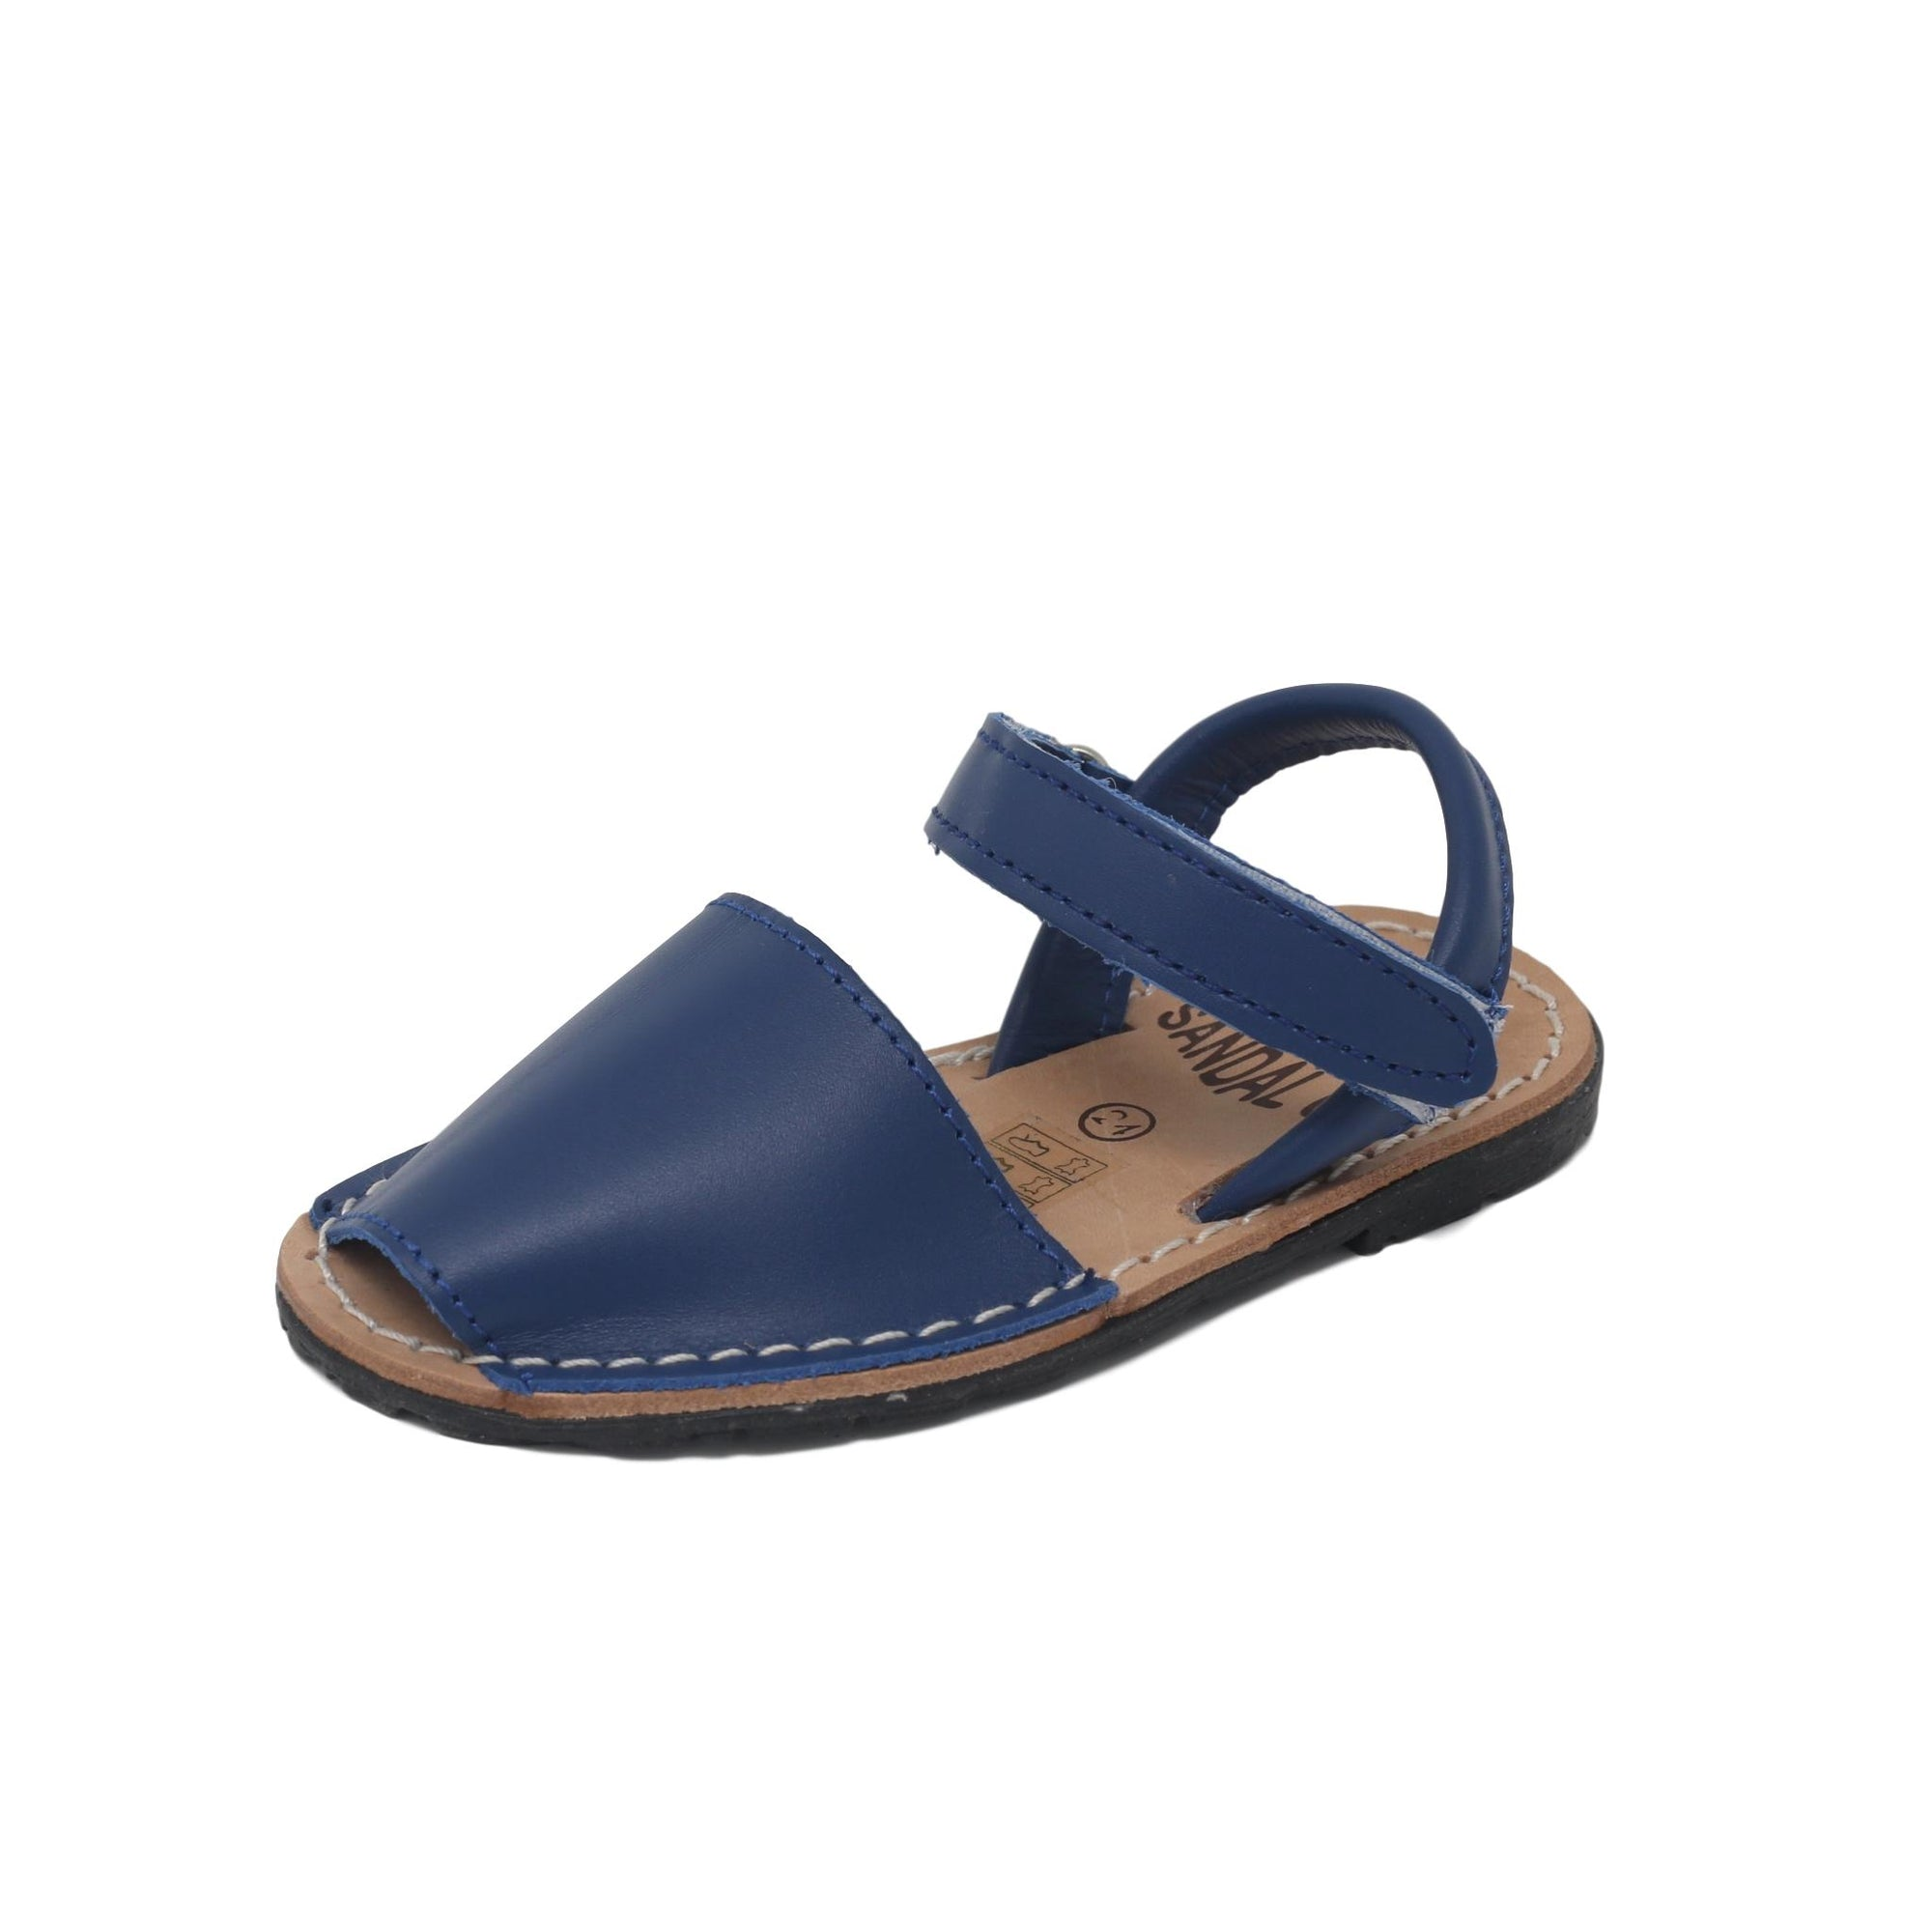 Kids navy blue with velcro strap